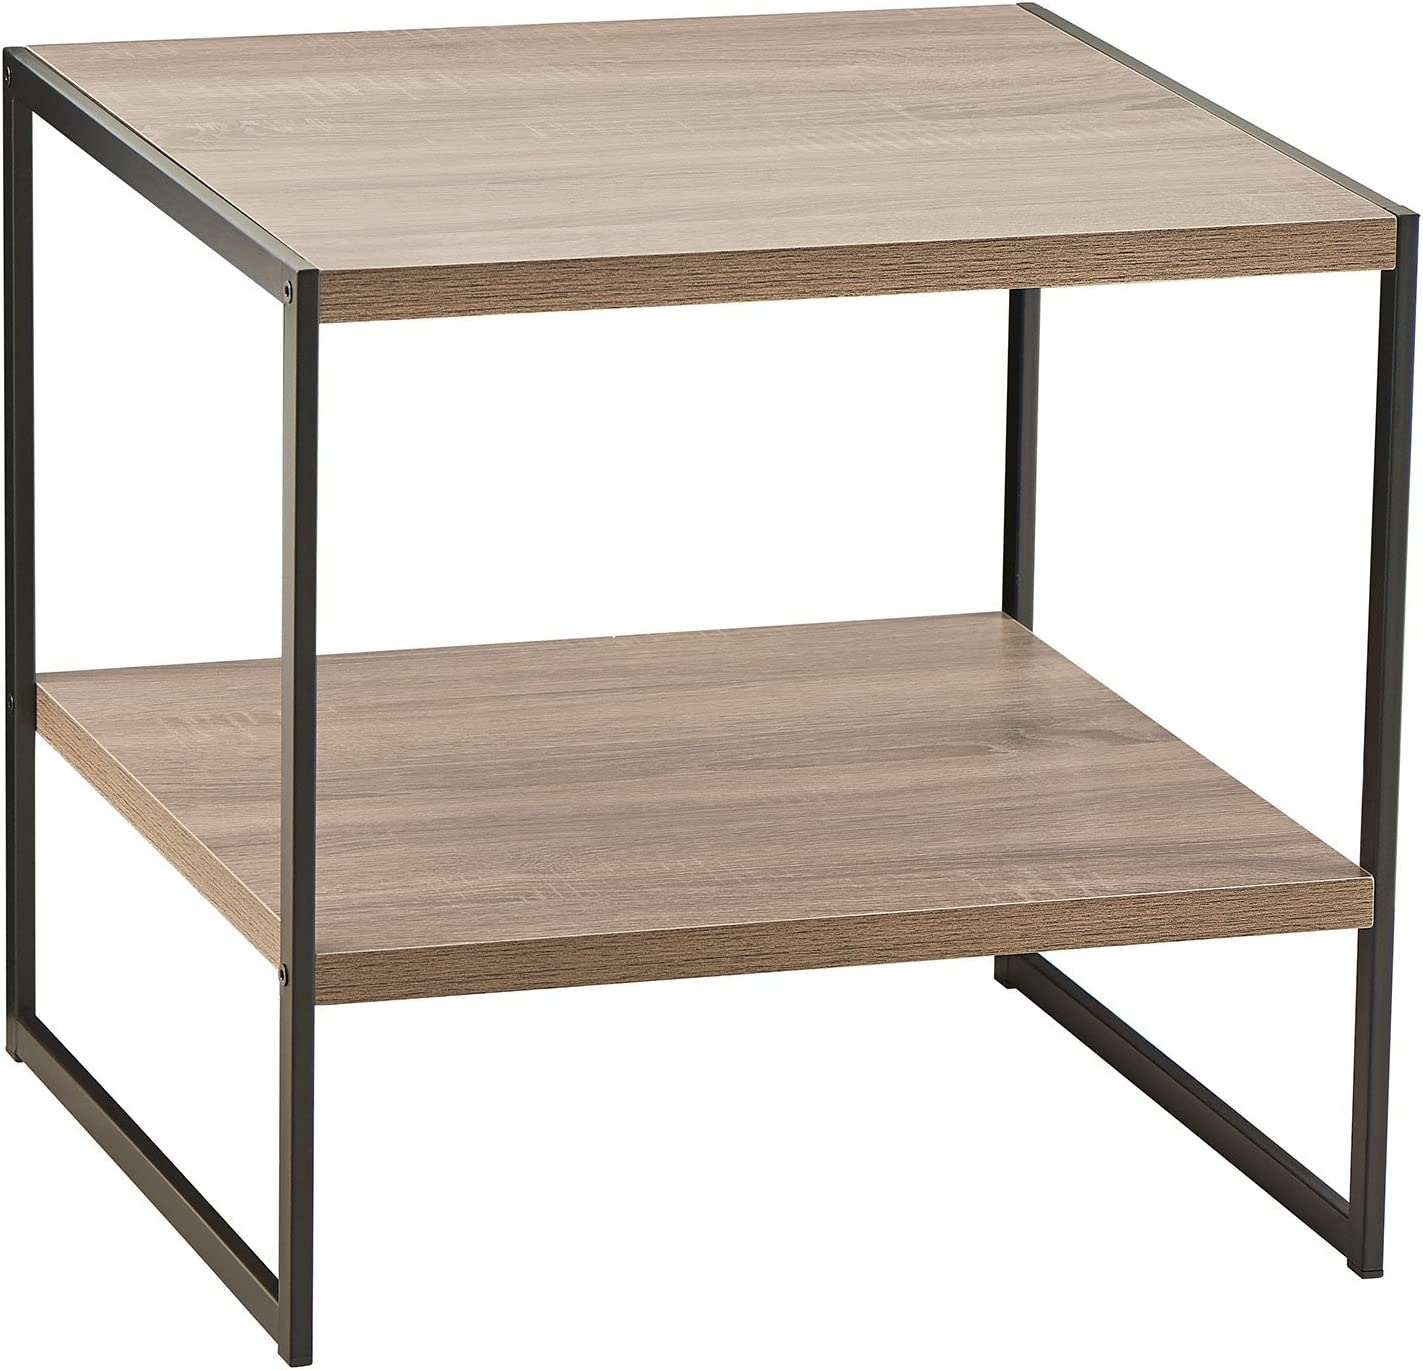 ClosetMaid 1314 2-Tier Square Wood Side Table with Storage Shelf, Gray: Kitchen & Dining